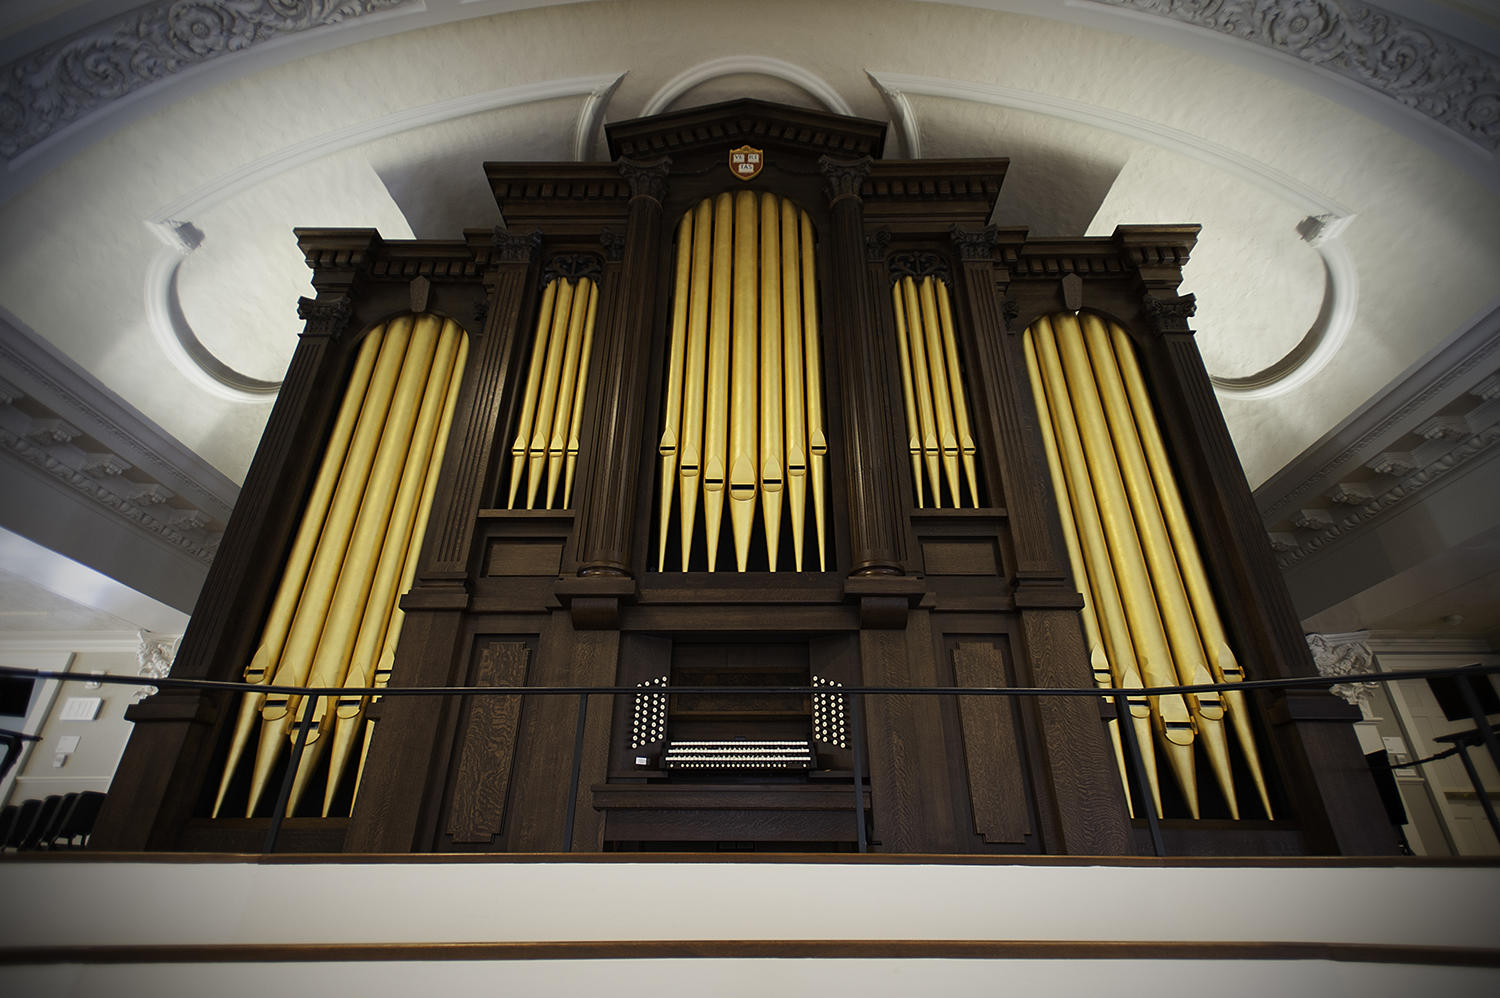 The Charles B. Fisk & Peter J. Gomes Memorial Organ